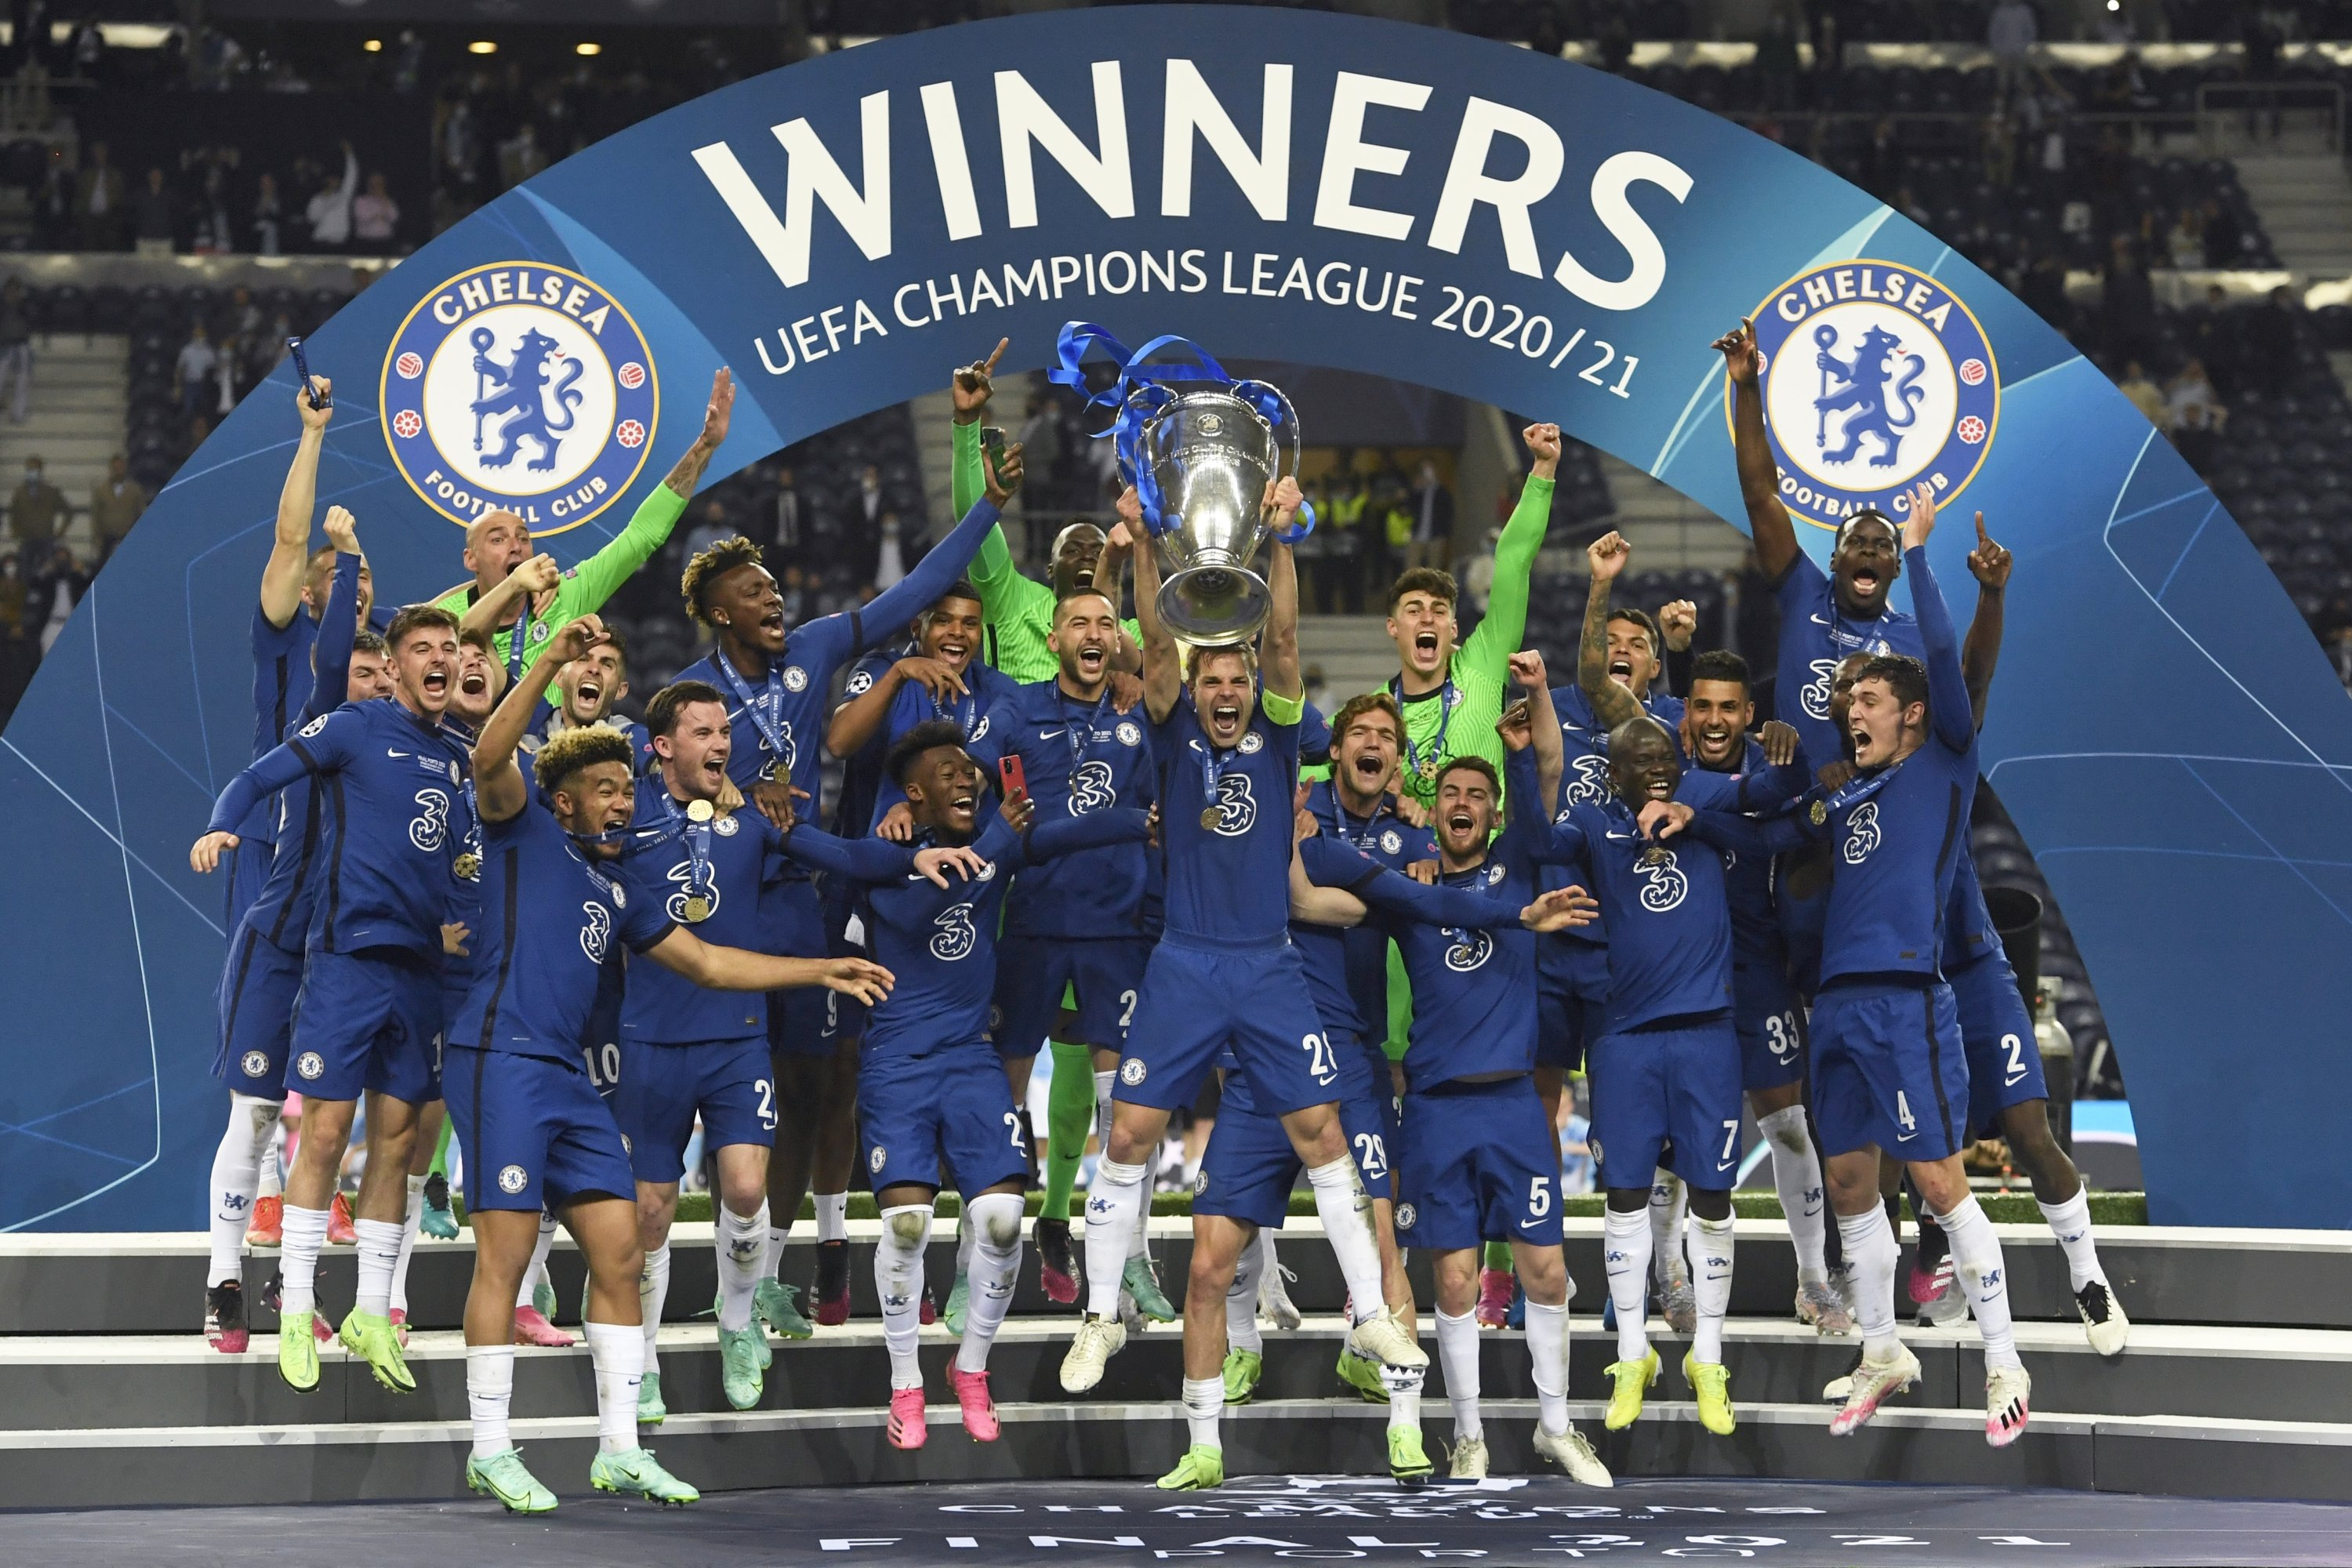 Chelsea's captain Cesar Azpilicueta (C) lifts the trophy at the end of the Champions League final against Manchester City at the Dragao Stadium in Porto, Portugal, May 29, 2021. (AP Photo)